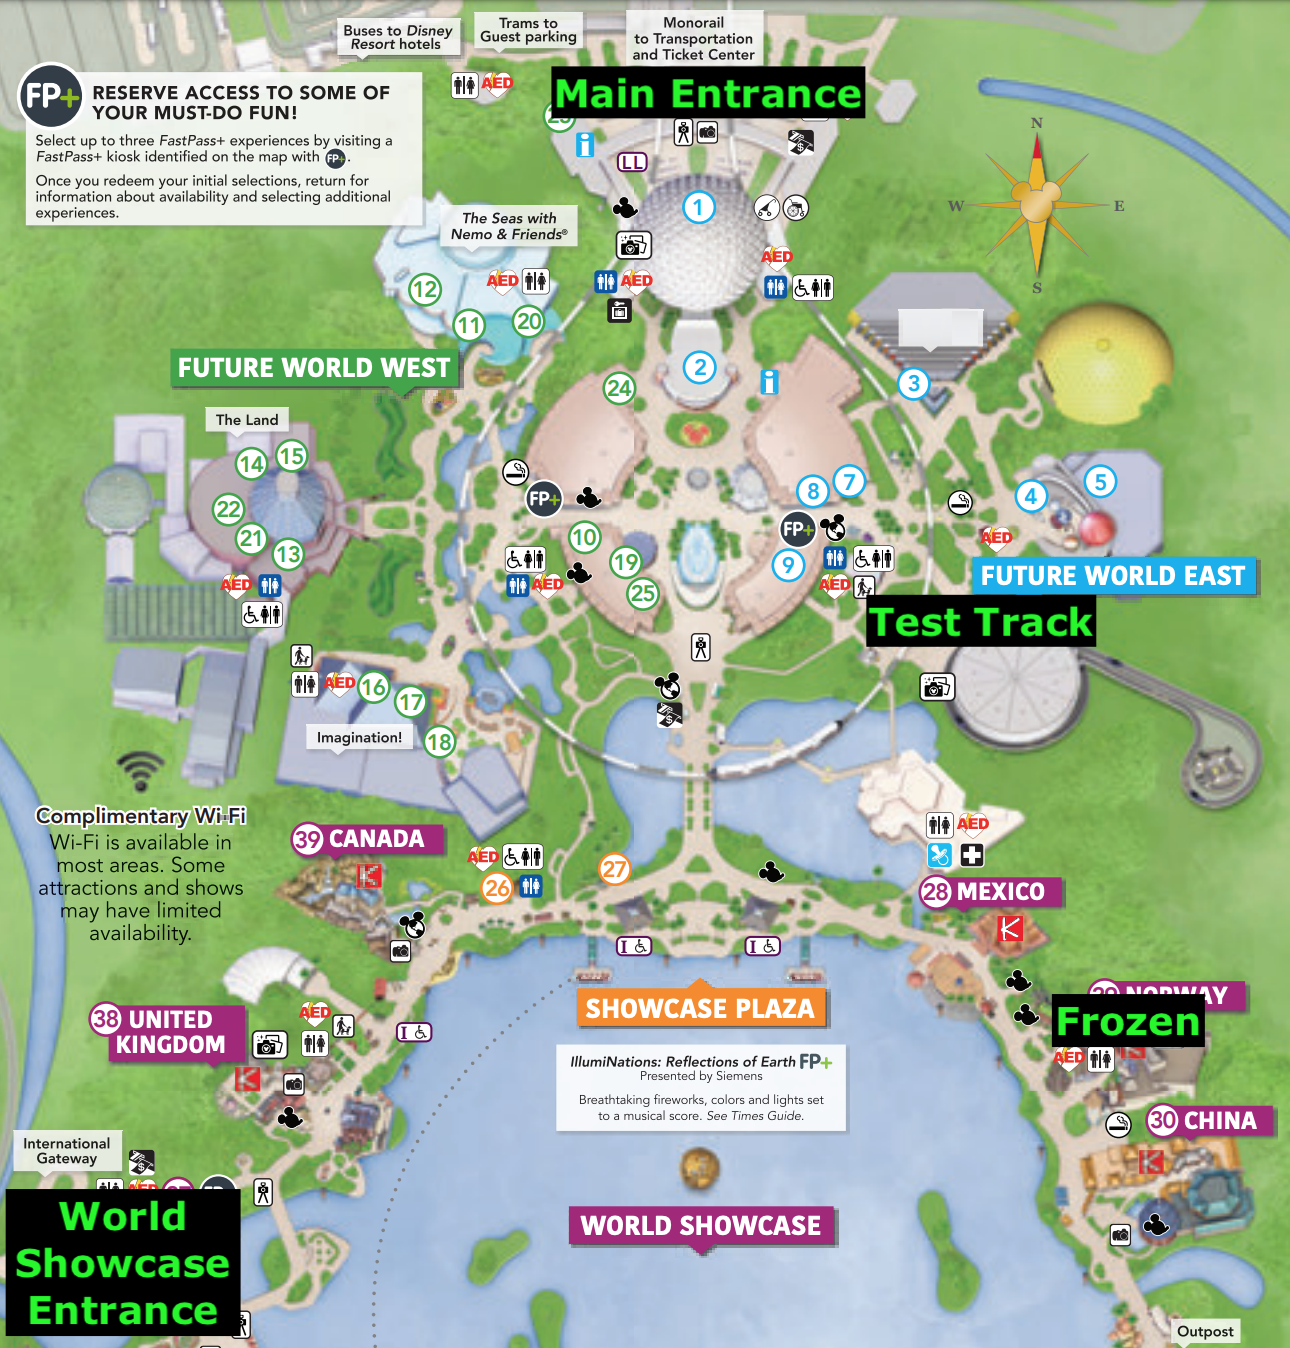 Disney World Skyliner Opening Trip Report Part 4 - Mouse Hacking